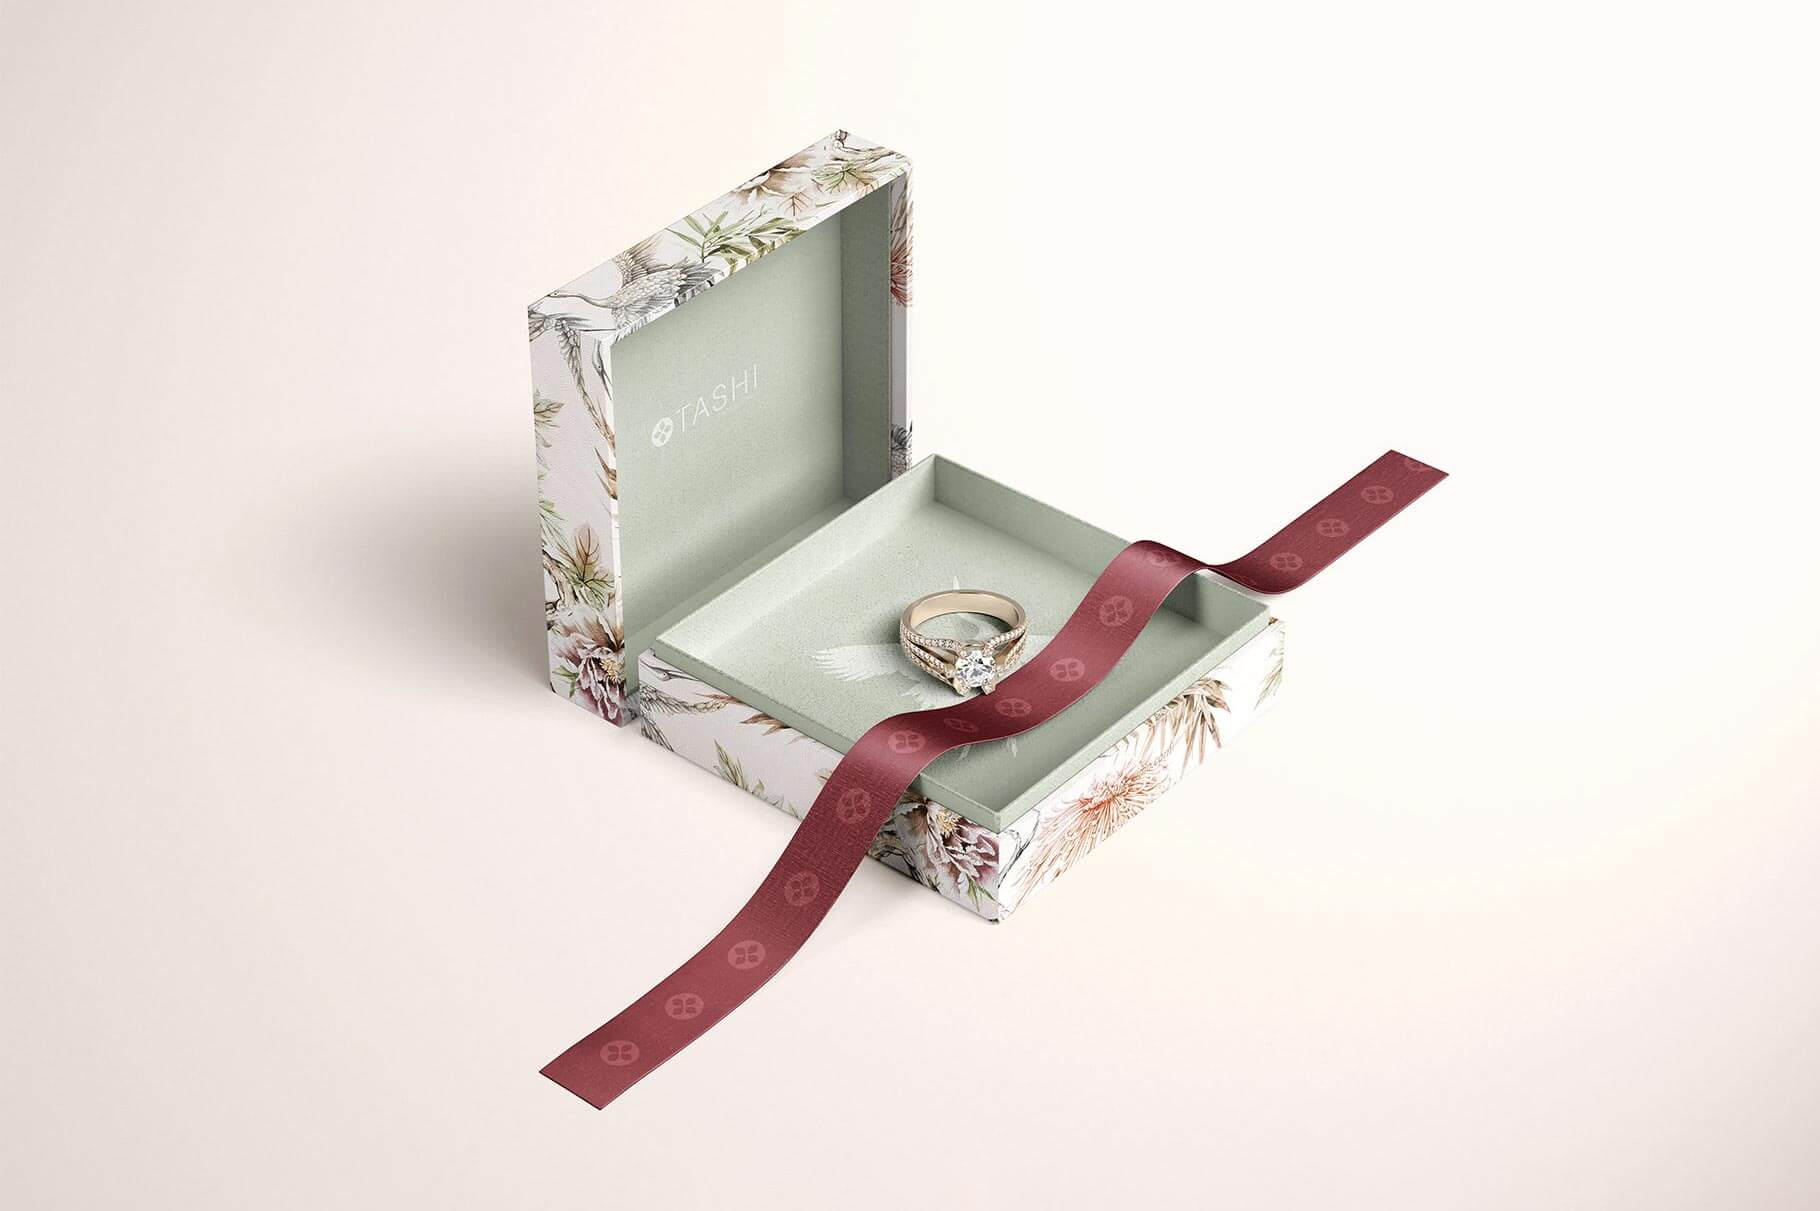 Jewelry Box Mockup Set